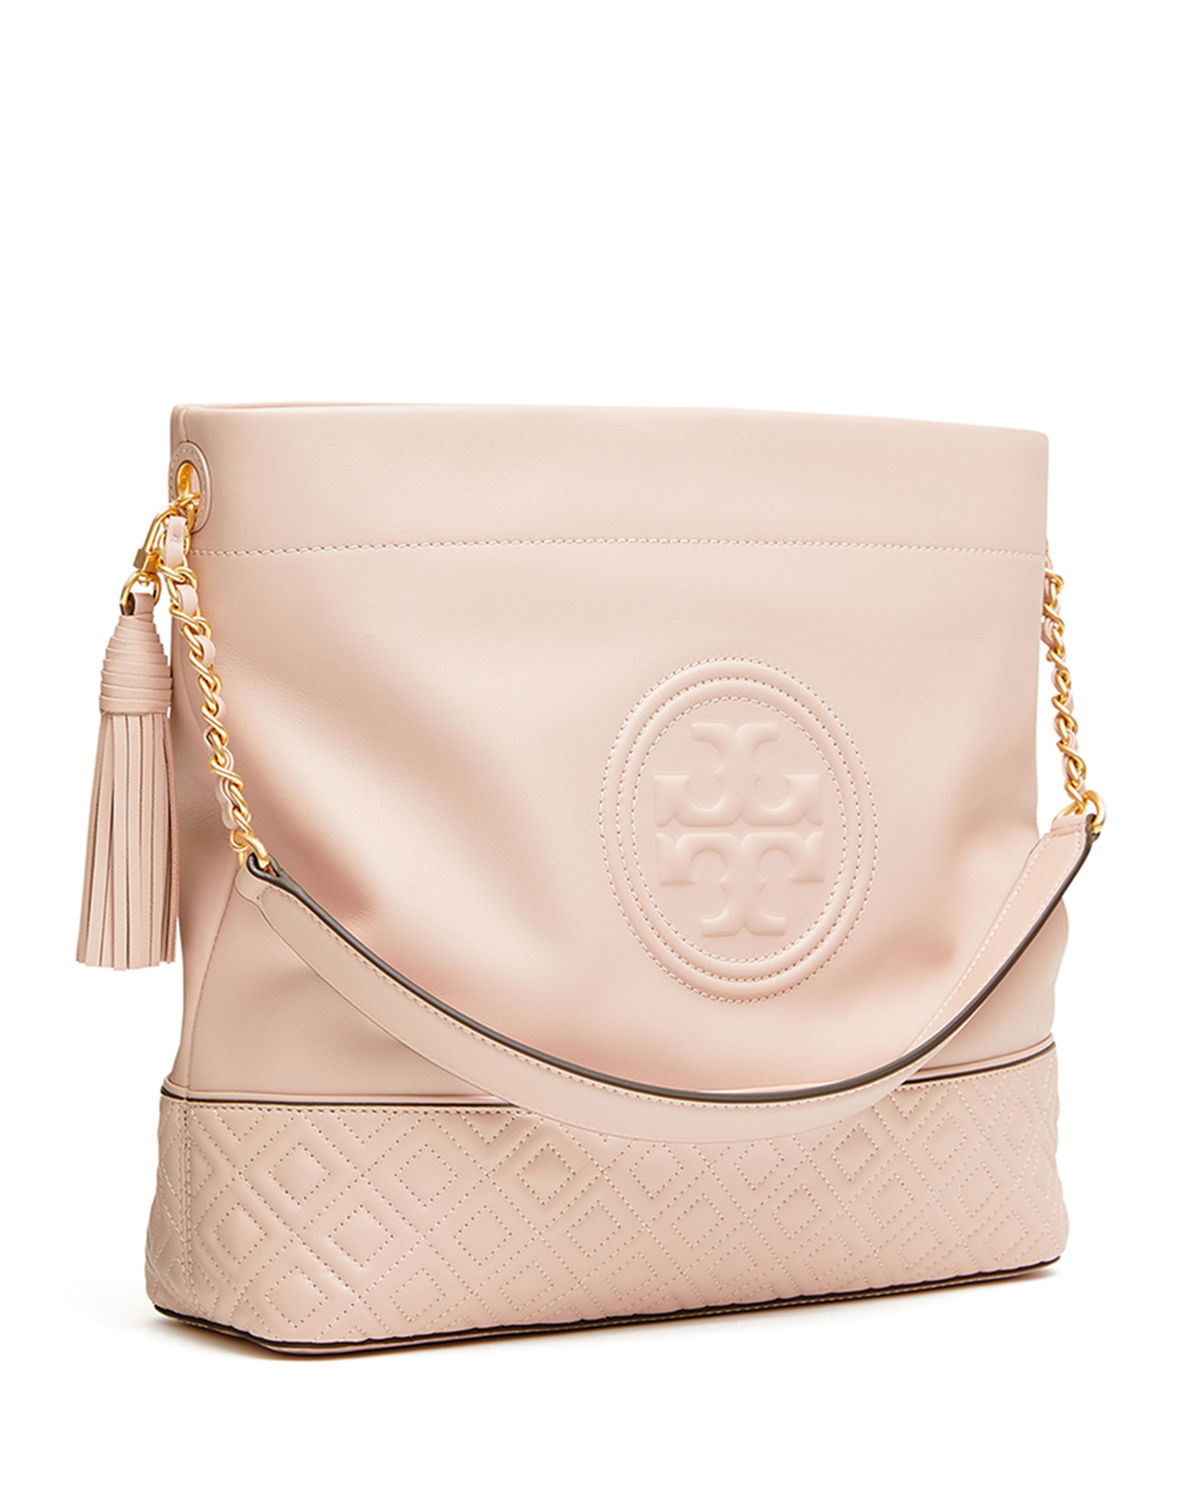 Tory Burch Fleming Quilted Leather Hobo Bag Neiman Marcus